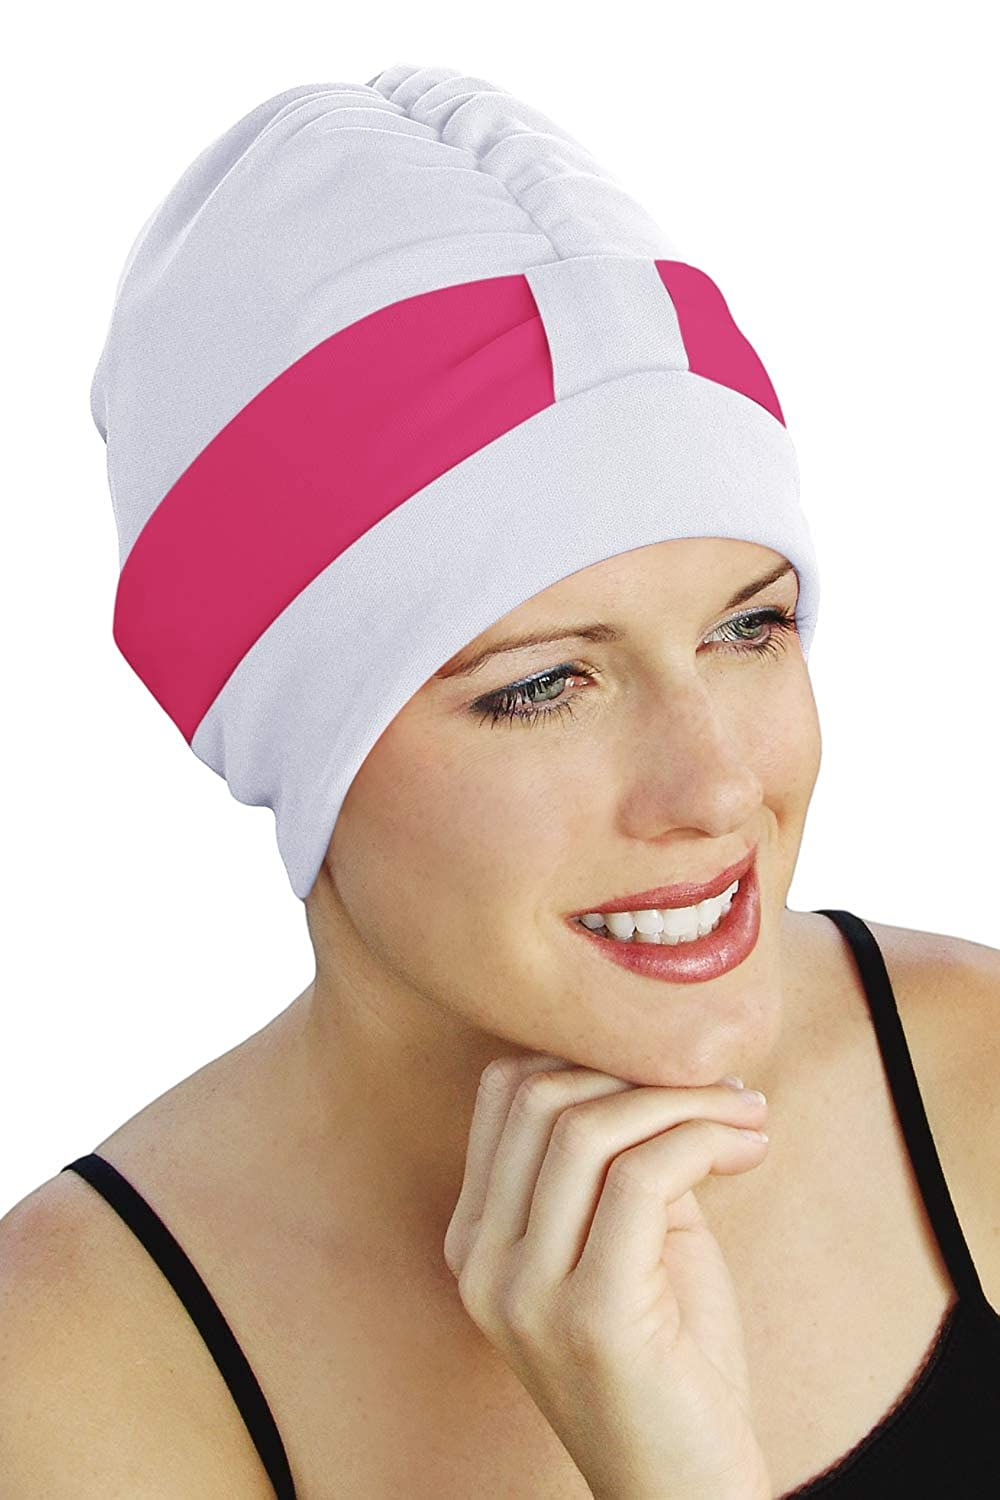 1950s Style Hats for Sale Retro Two Tone Swim Cap - Vintage Bathing Cap $13.19 AT vintagedancer.com